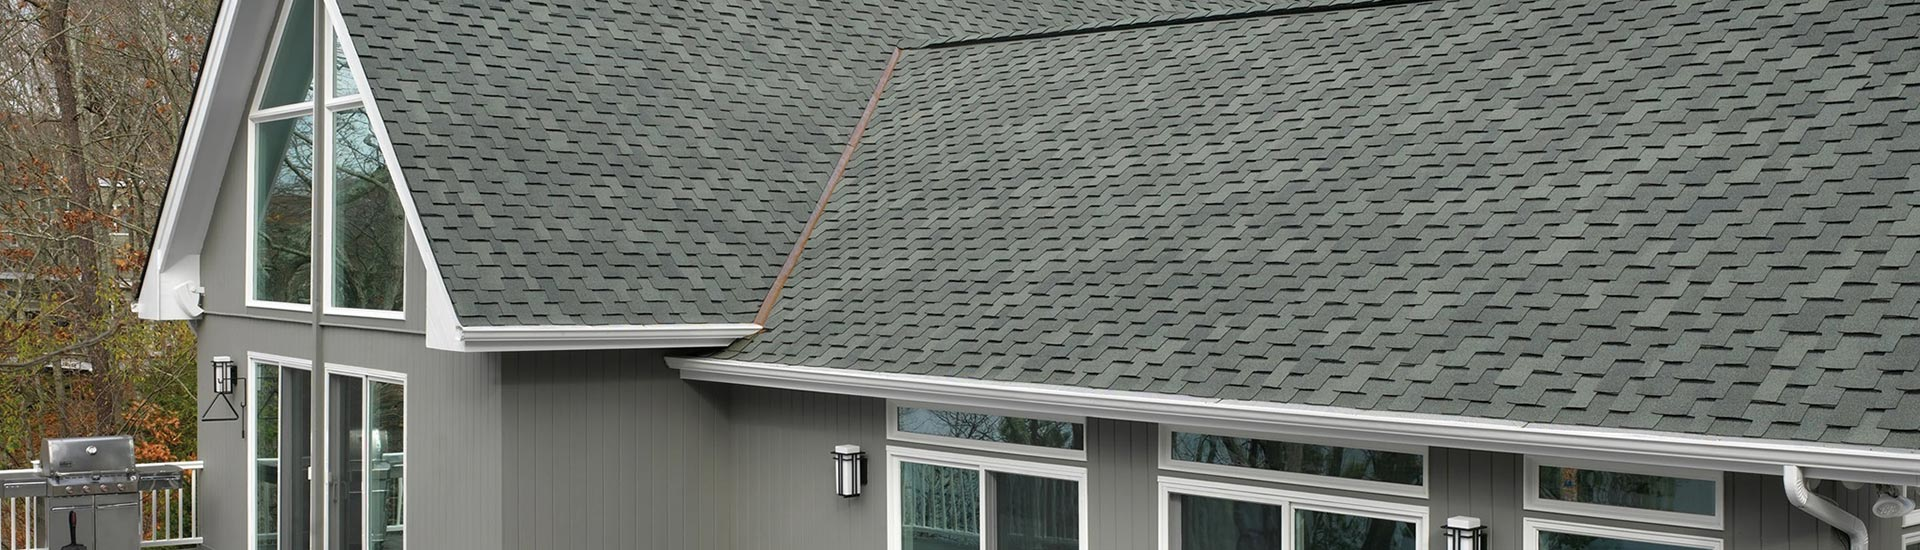 Roof Installation Services